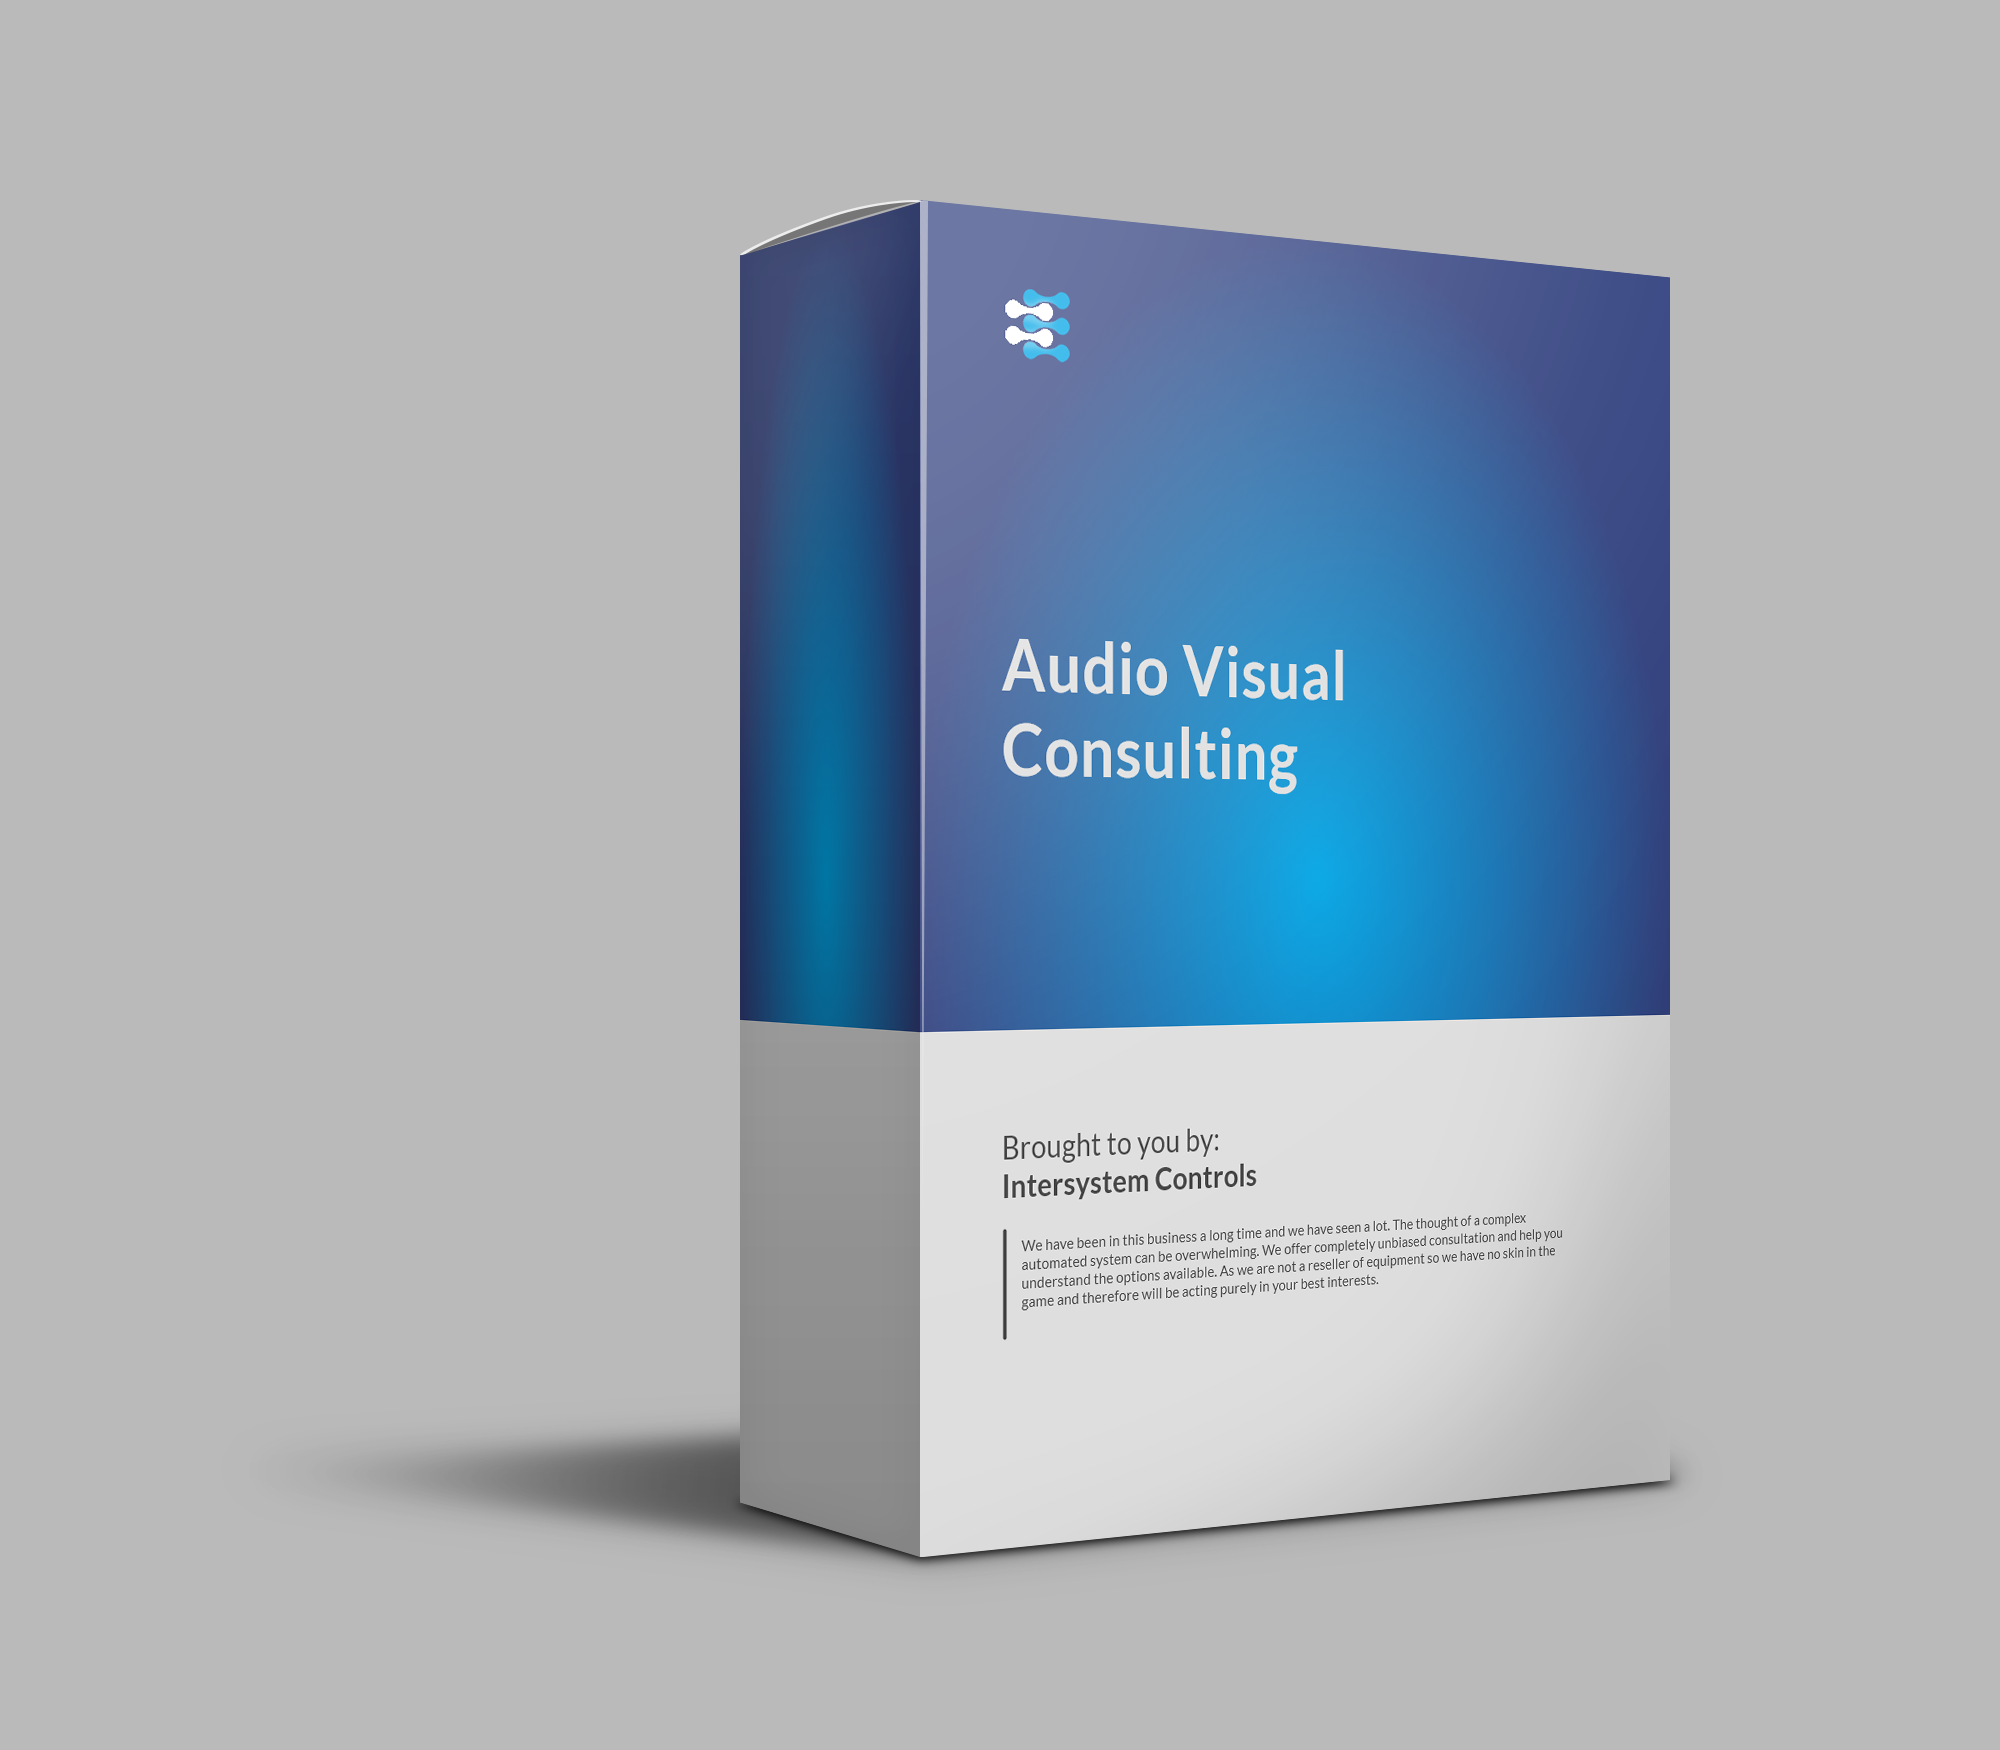 A product image of a white and blue box for audio visual consulting services.